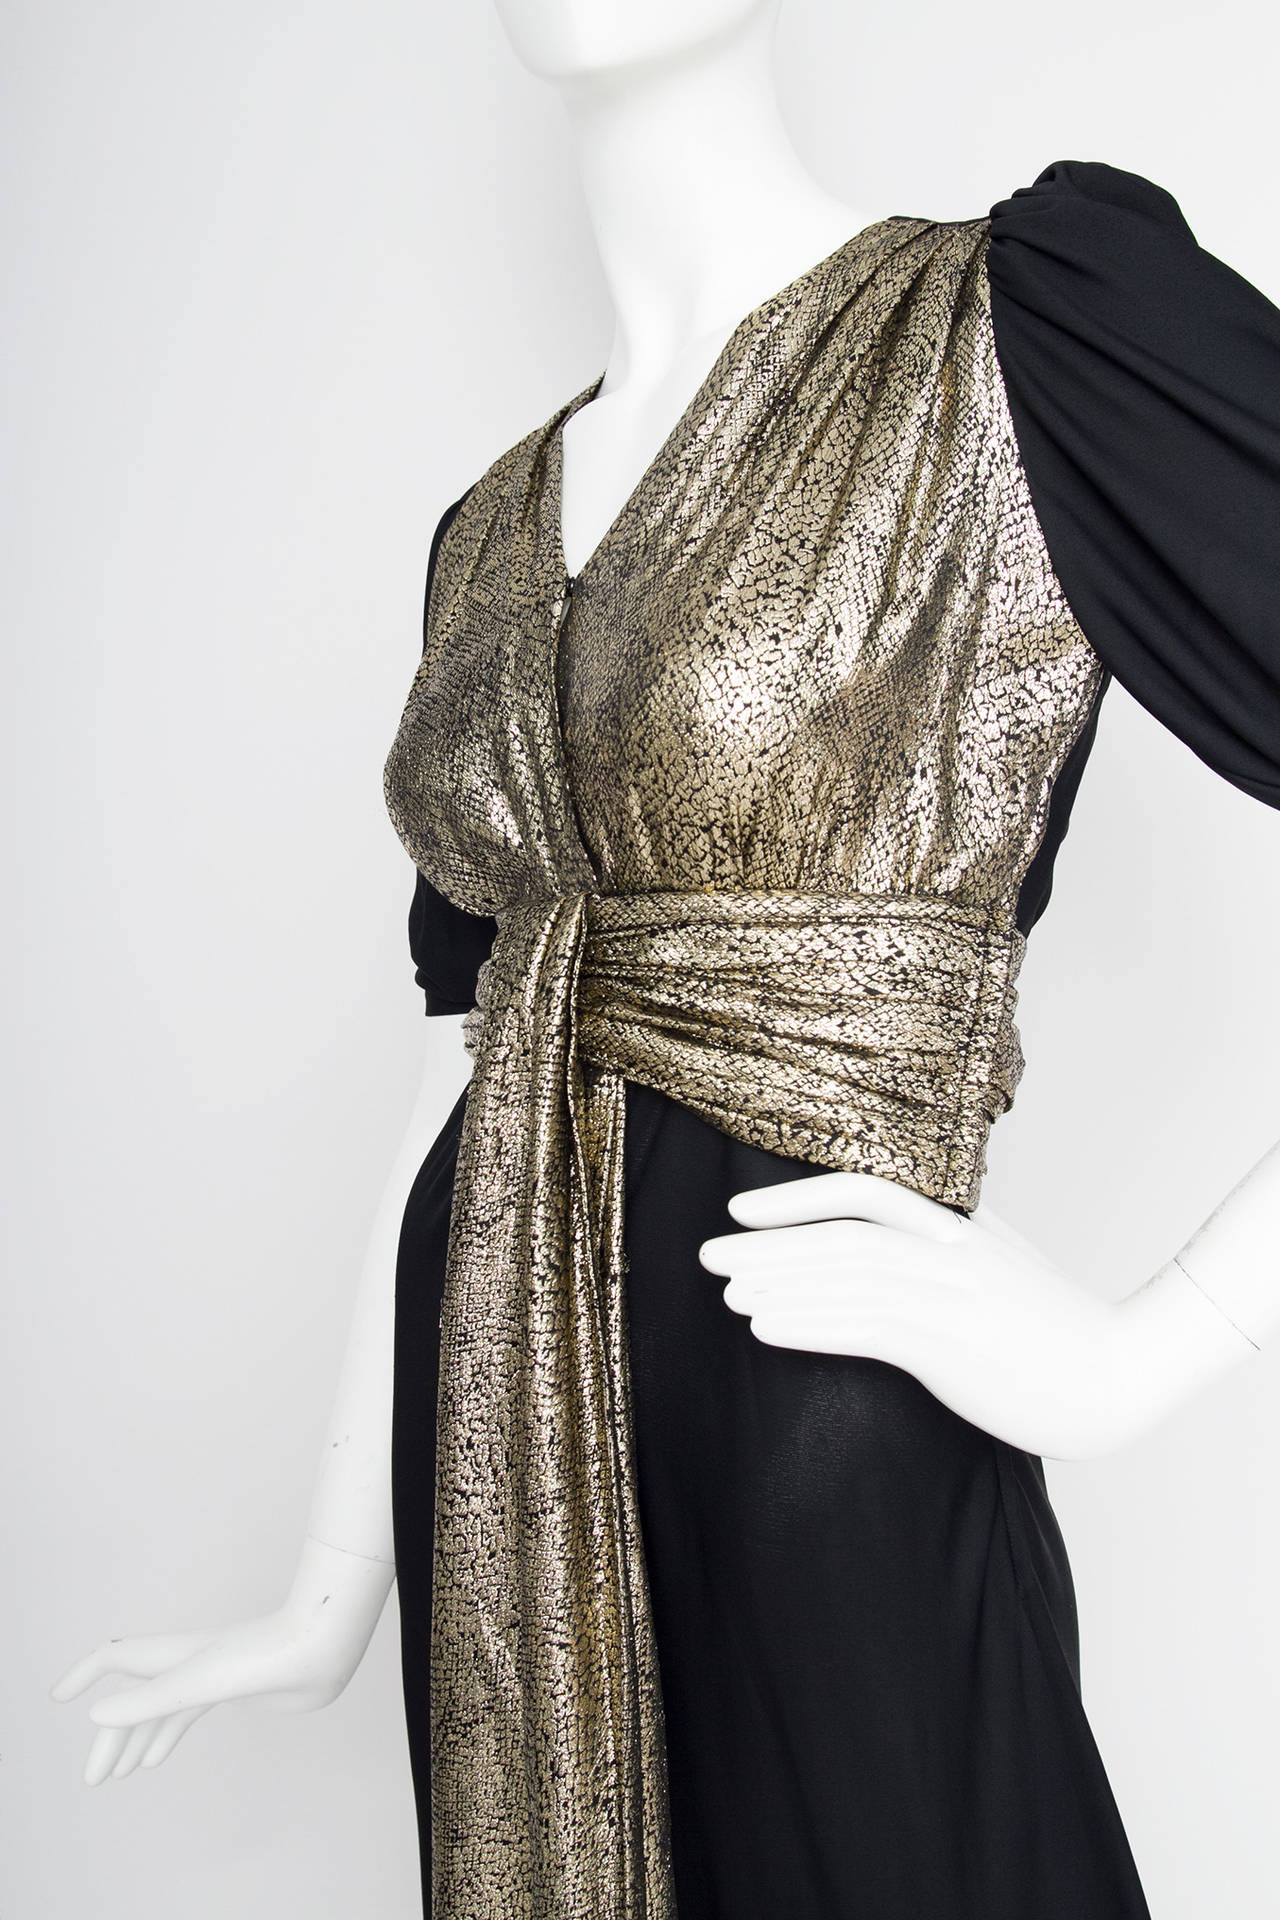 Yves Saint Laurent Black Silk and Gold Lamé Dress, 1970s  For Sale 1